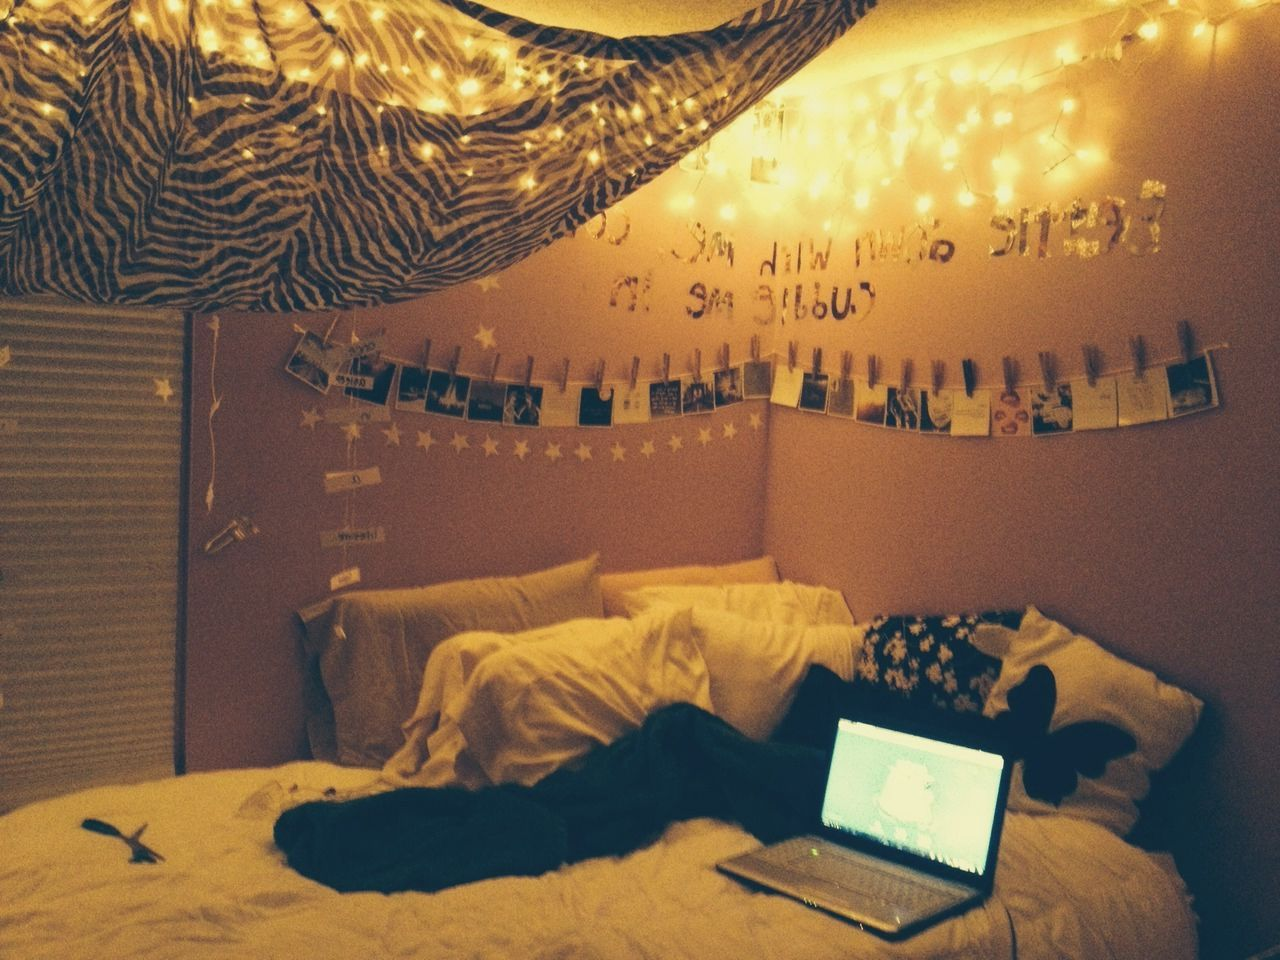 Bedroom ideas for girls tumblr - Bedroom Ideas For Teenage Girls Tumblr Google Search